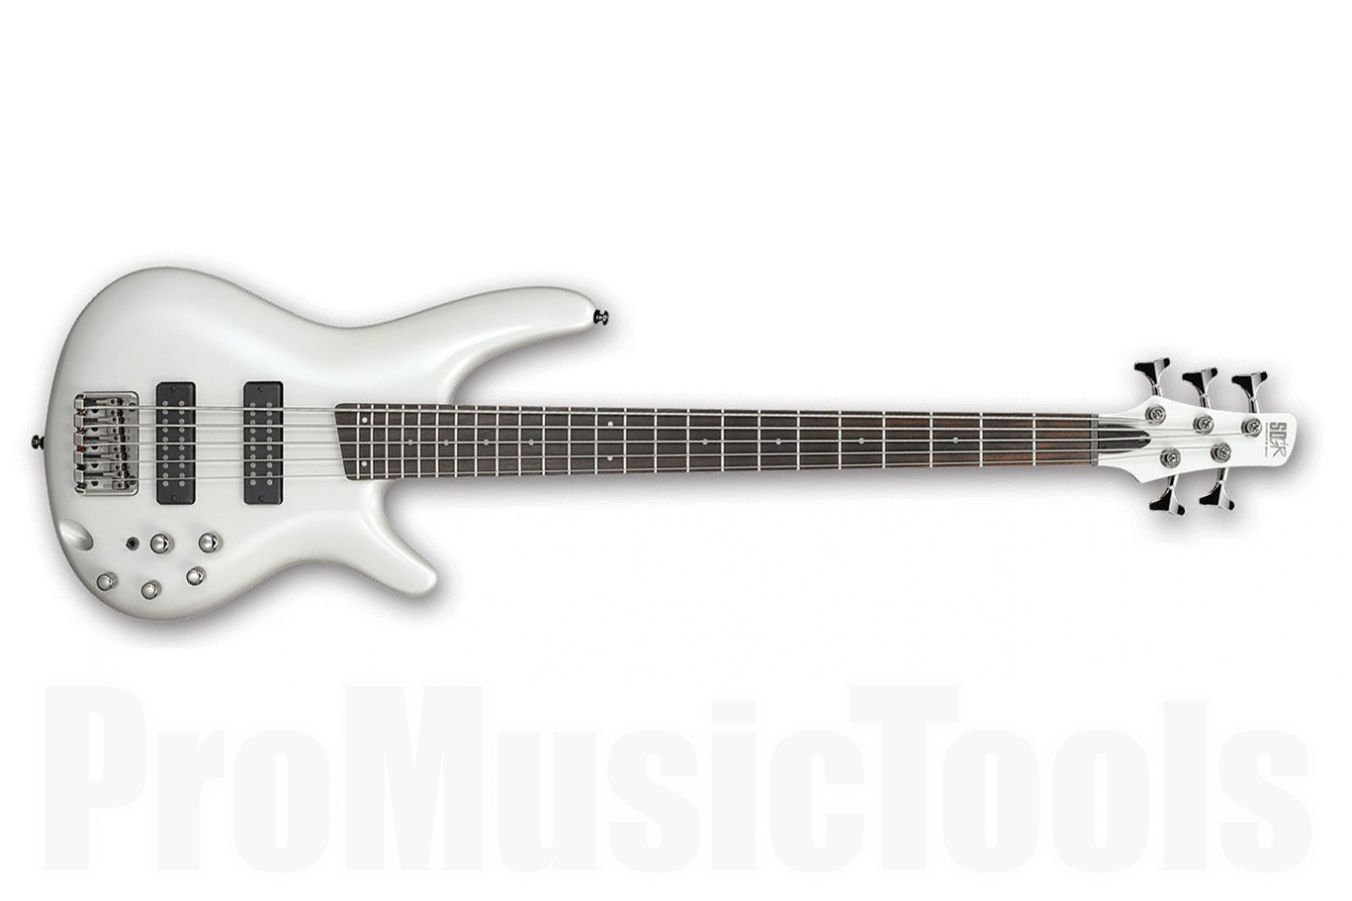 Ibanez SR305E PW - Pearl White - b-stock (1x opened box)